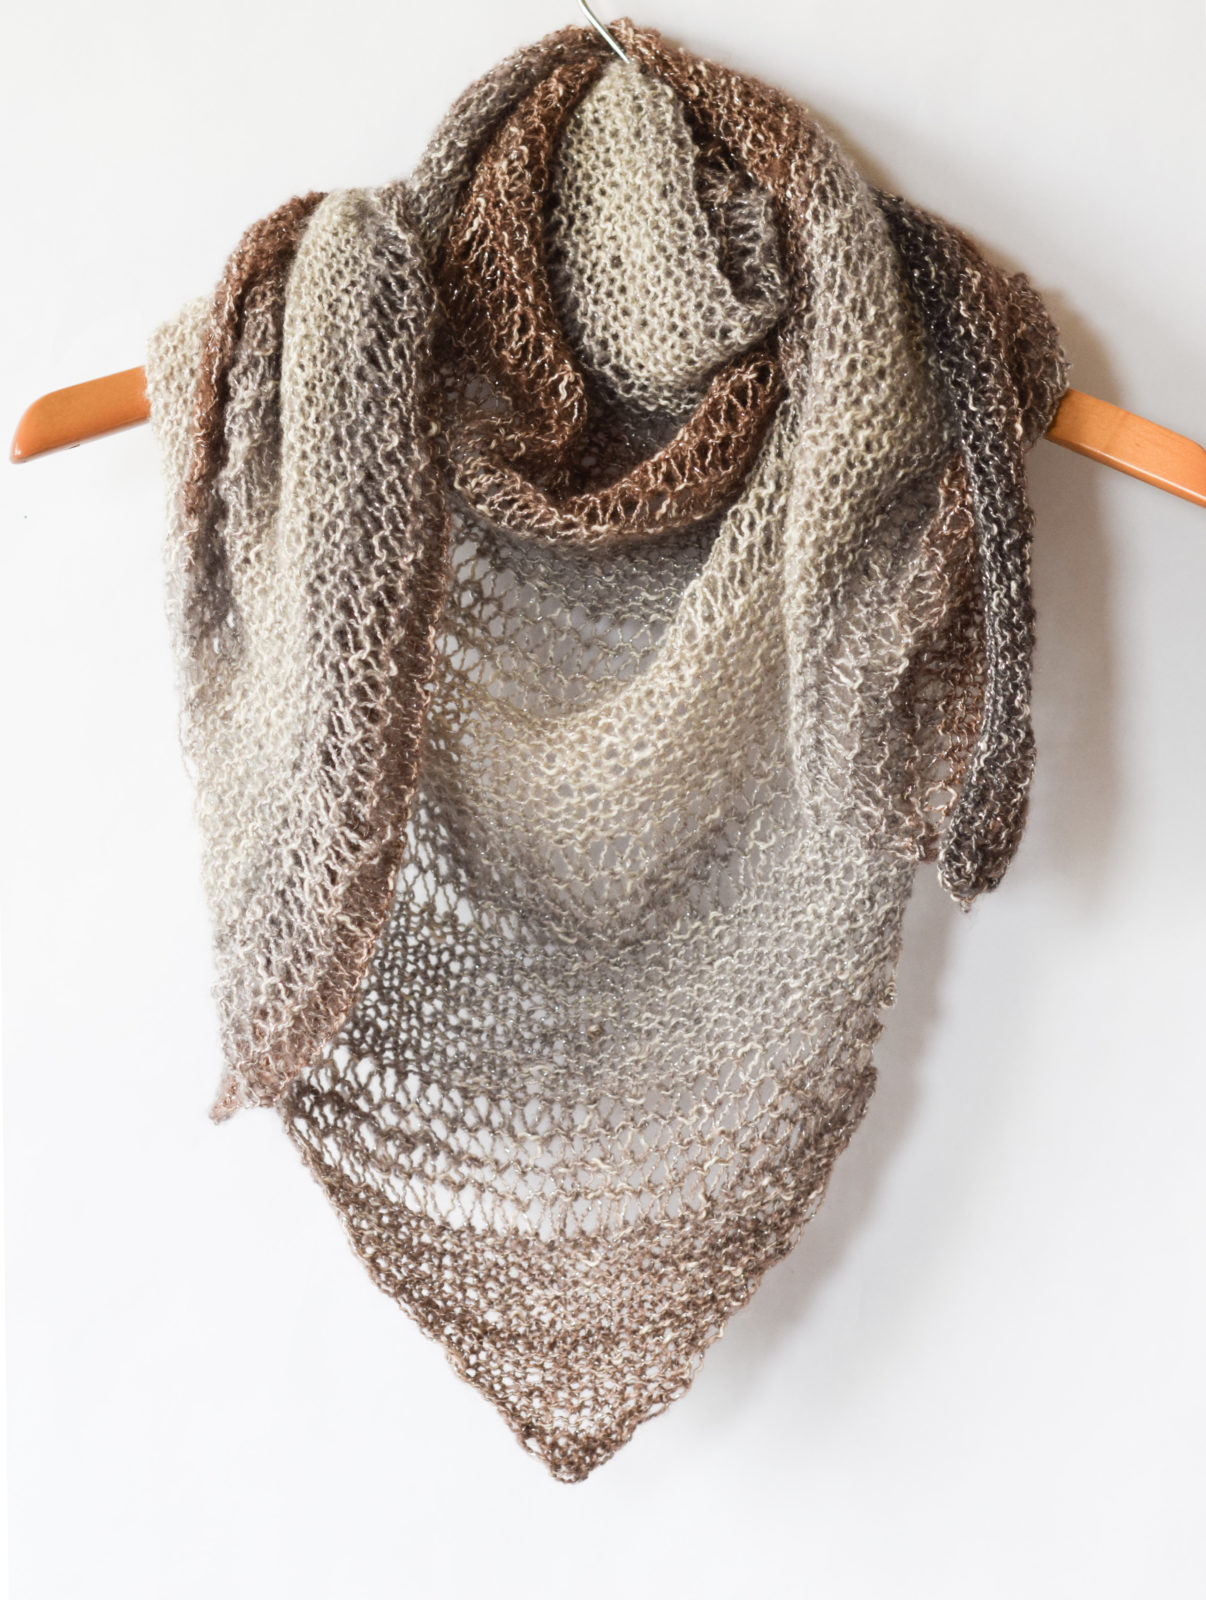 Scarf Patterns Knitting Beginner How To Knit An Easy Triangle Wrap Mama In A Stitch